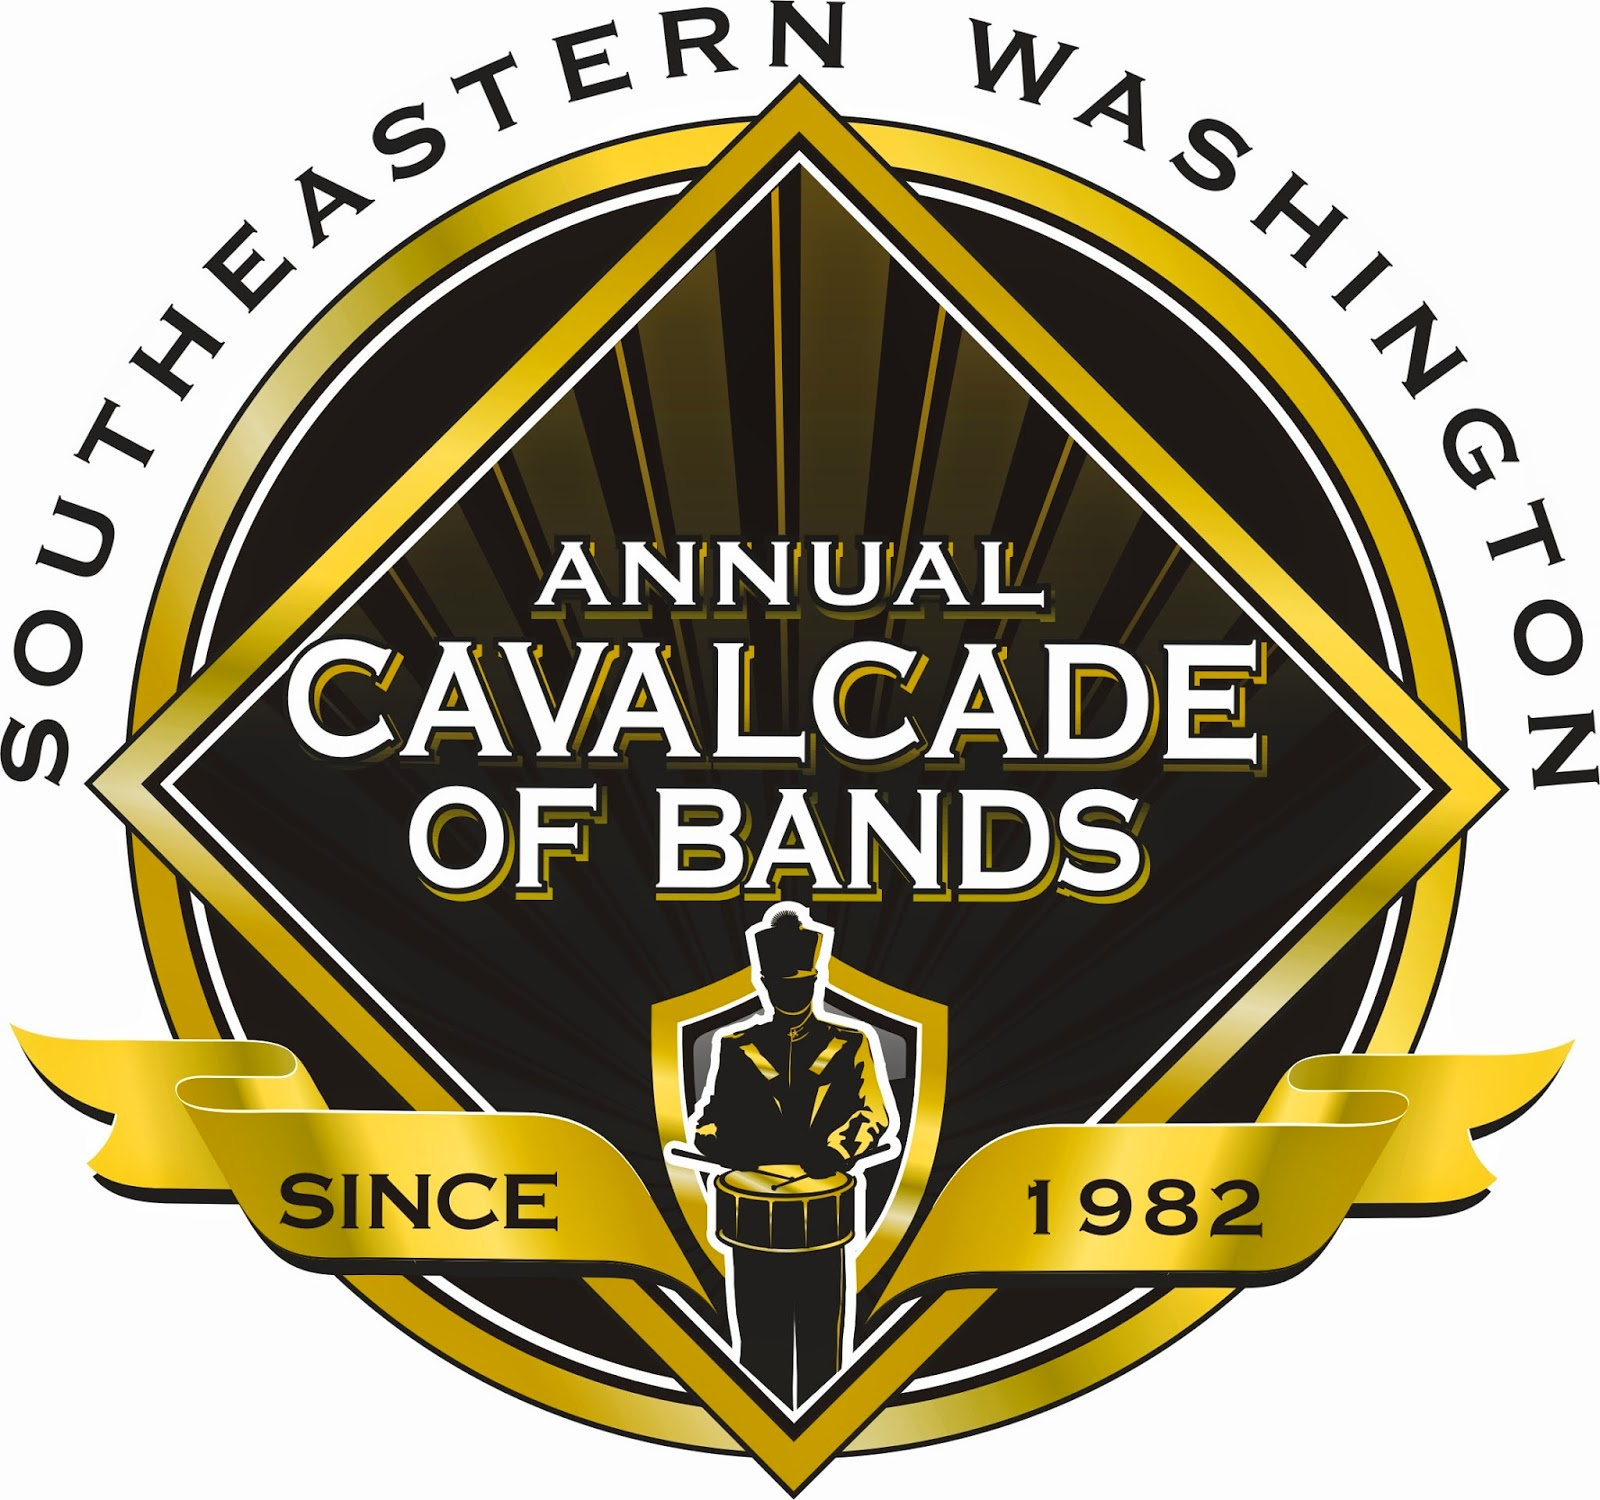 Cavalcade Of Bands Edgar Brown Memorial Stadium In Pasco, Washington